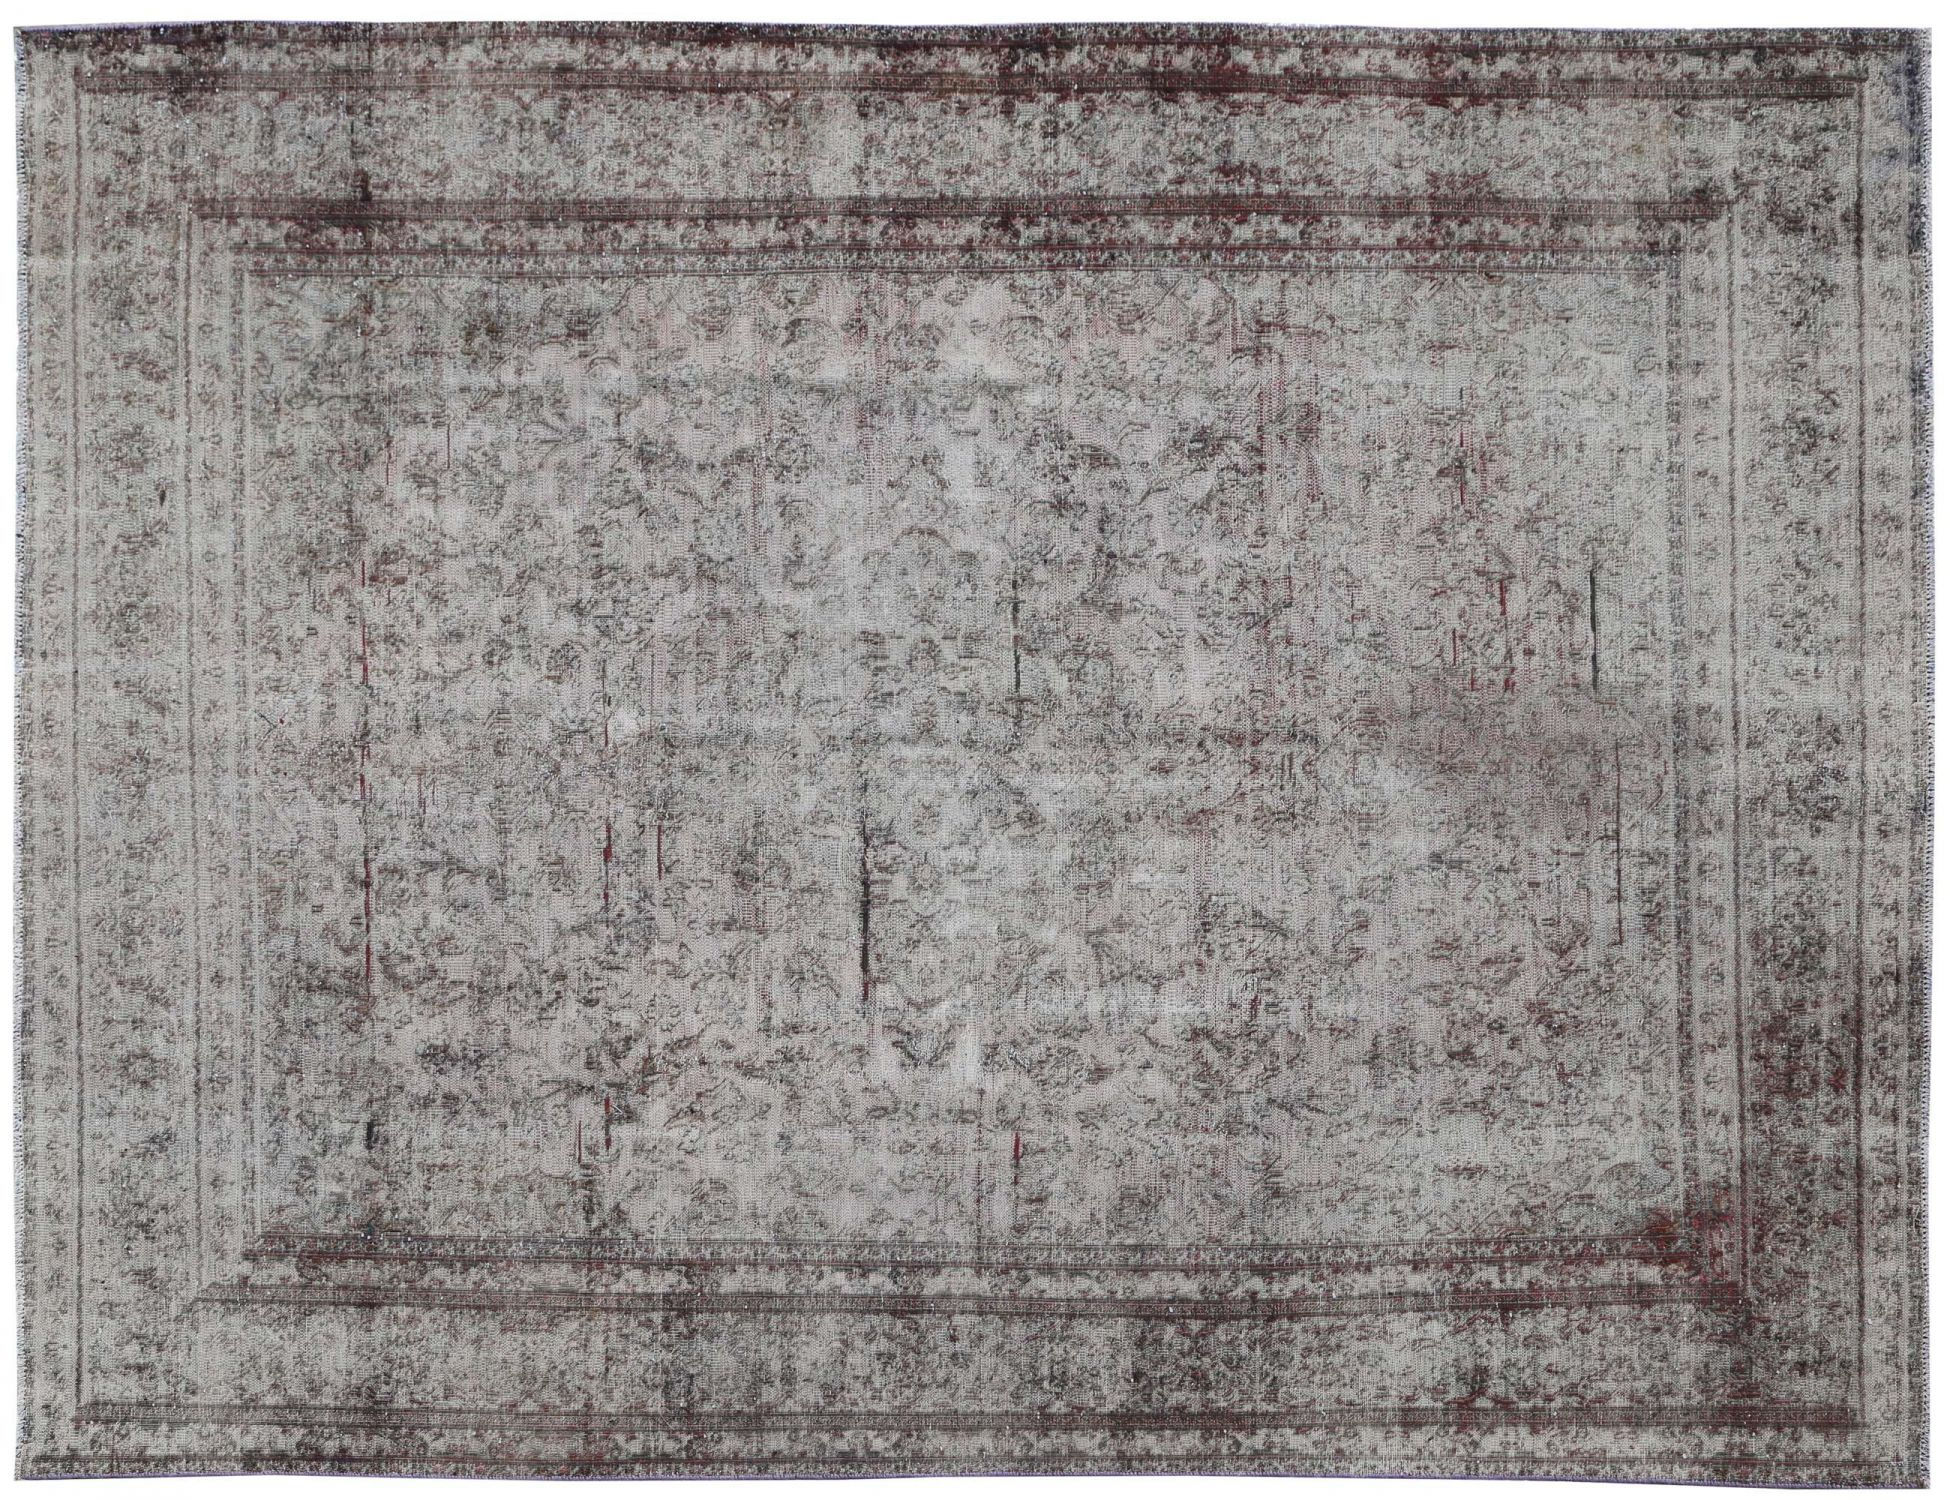 Vintage Carpet  grey <br/>390 x 285 cm